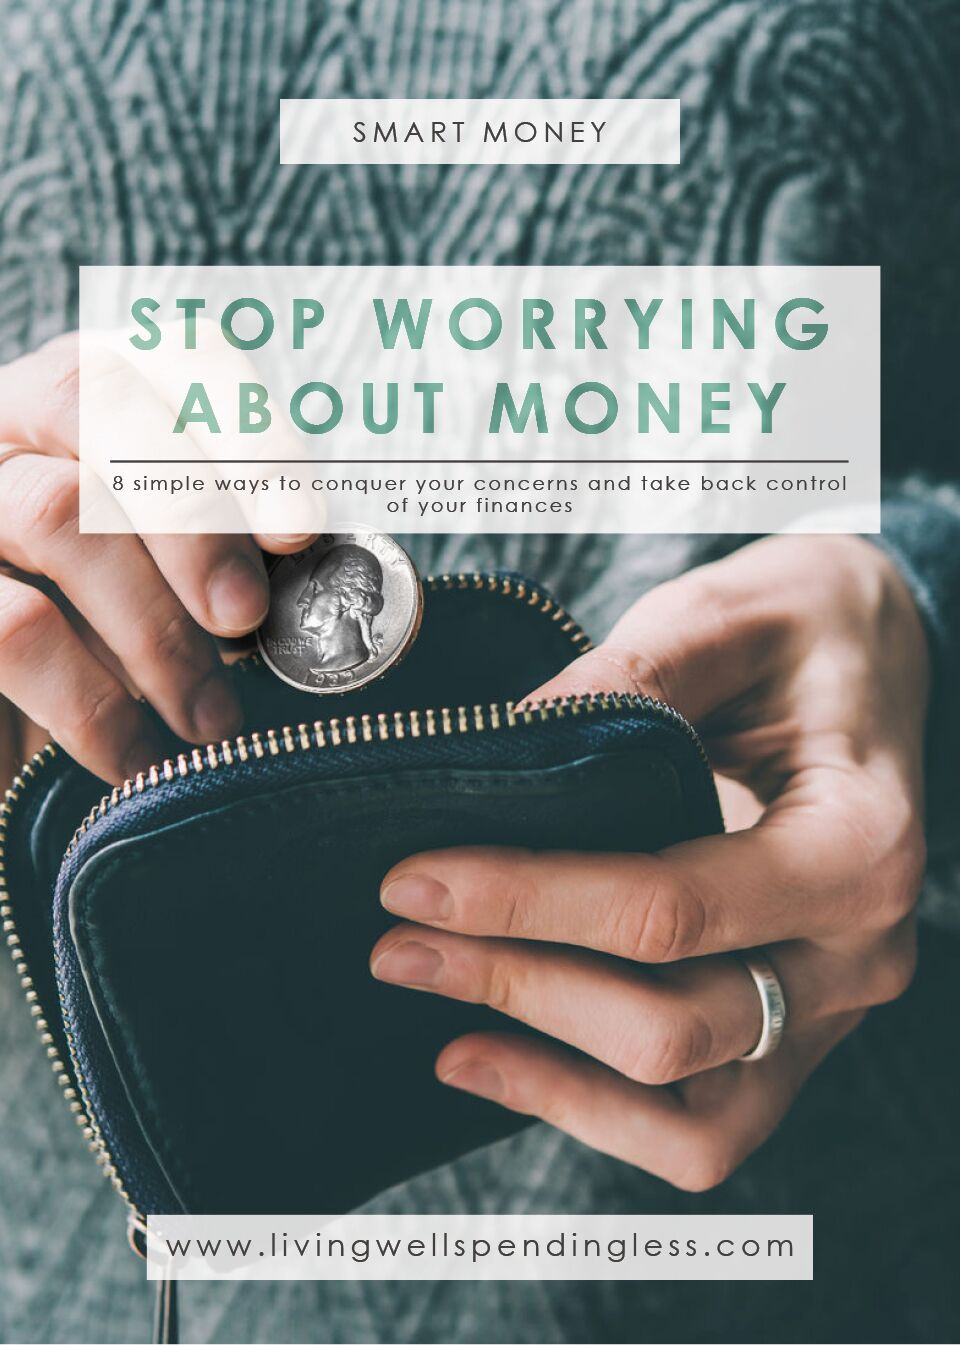 Stop Worrying About Money: 8 Simple Ways to Conquer Your Concerns and Take Back Control of Your Finances